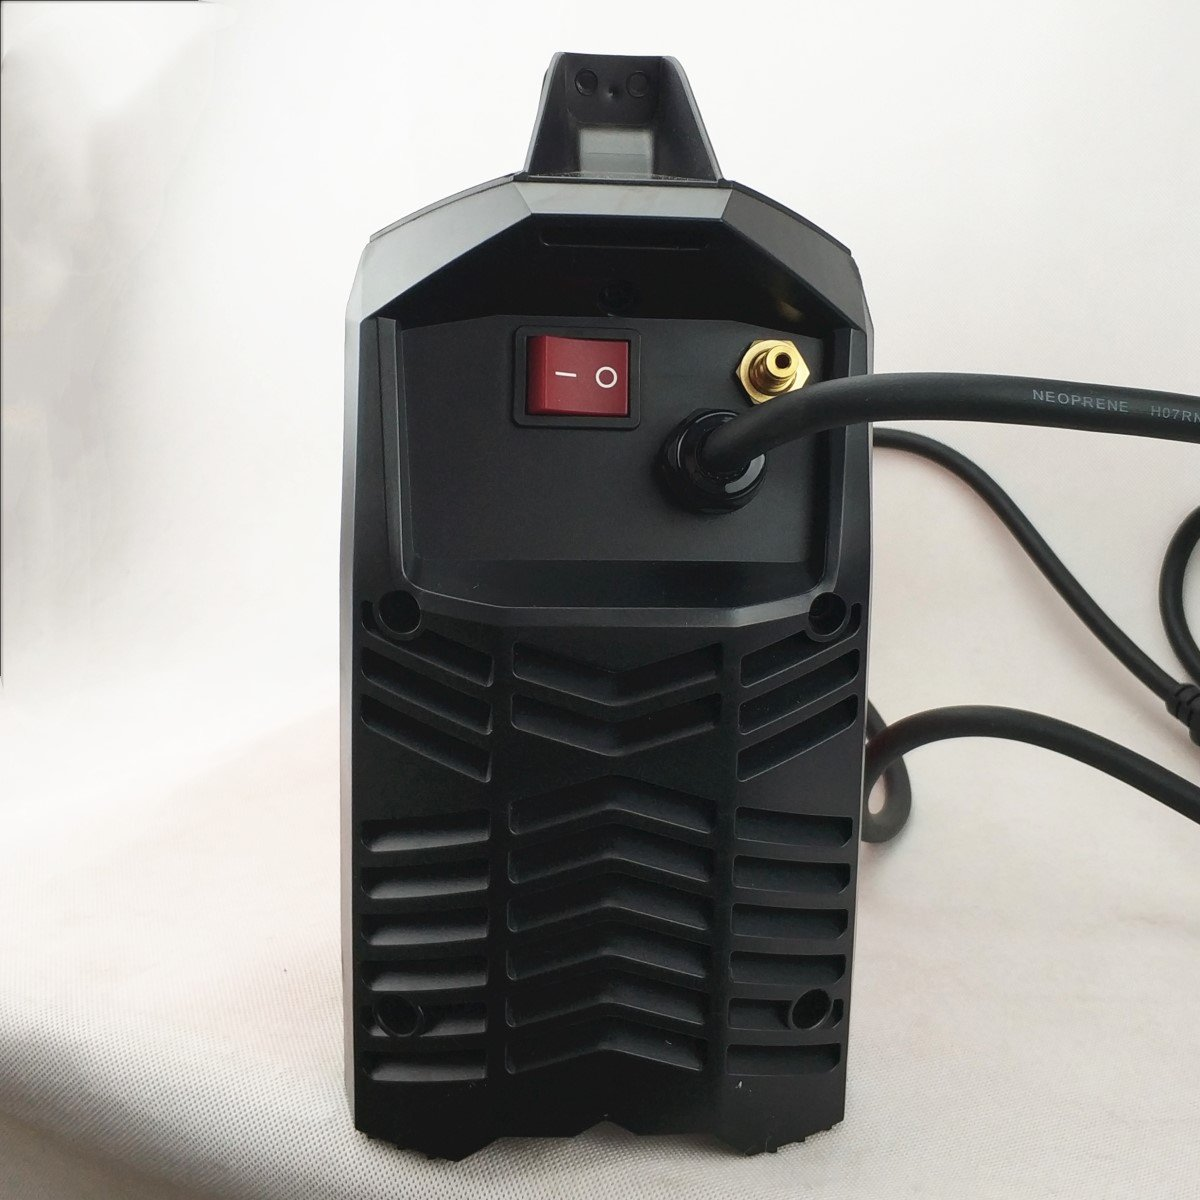 Aluminium Welder, ACDC TIG Welding Machine 200A, Digital Control AC/DC Pulse TIG/MMA CE Approved Professional IGBT Inverter TIG Welding - - Amazon.com